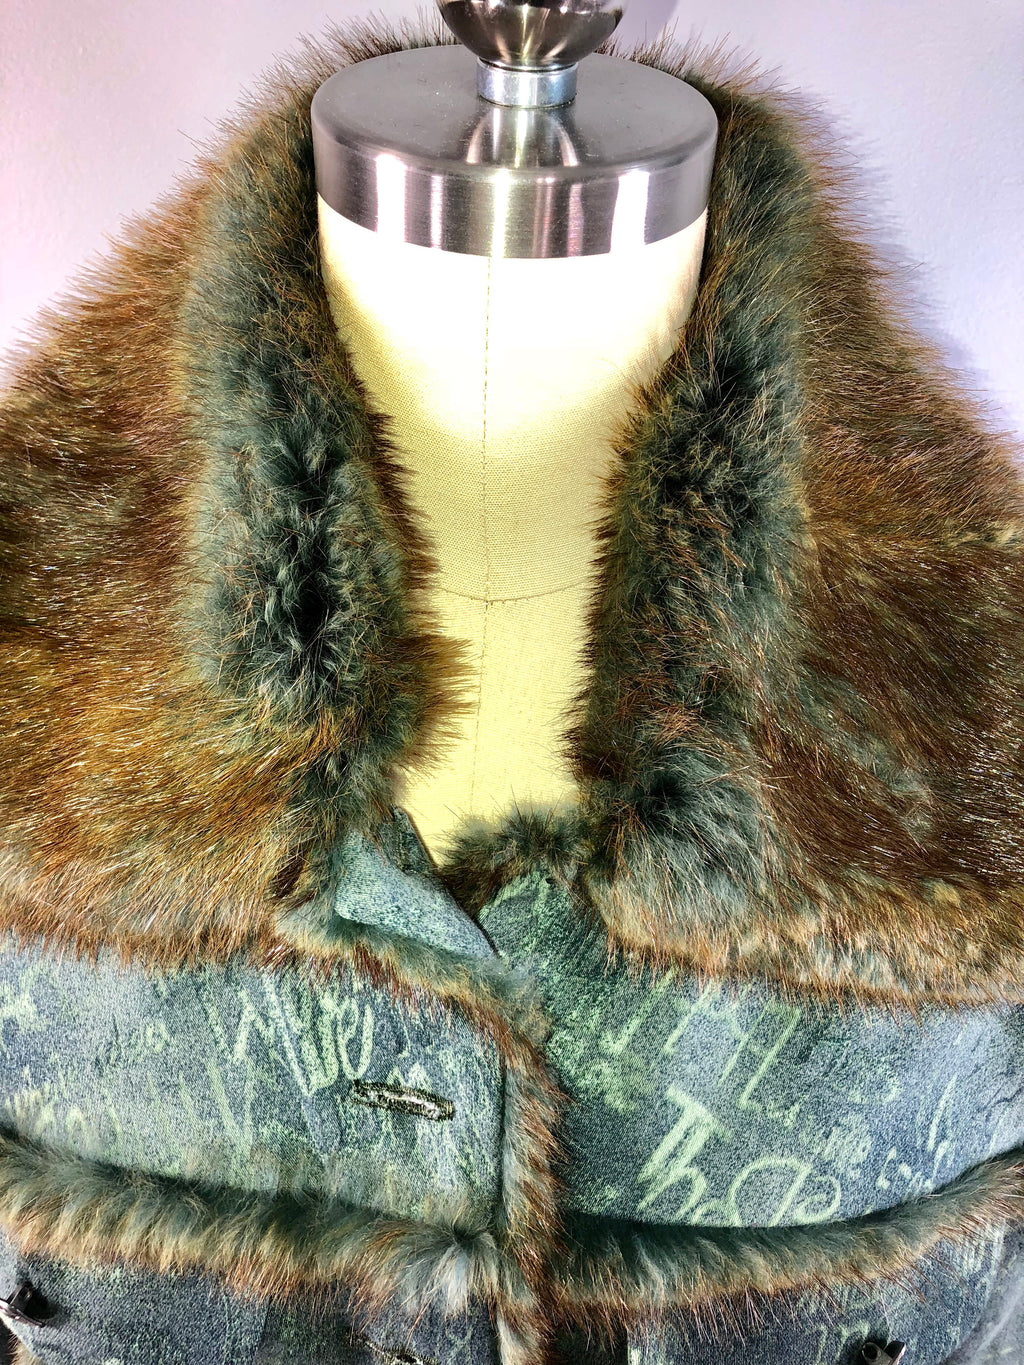 Jiki Monte Carlo 90s Vintage 1990s Denim Jacket Sable Fur Trim 34 bust Small